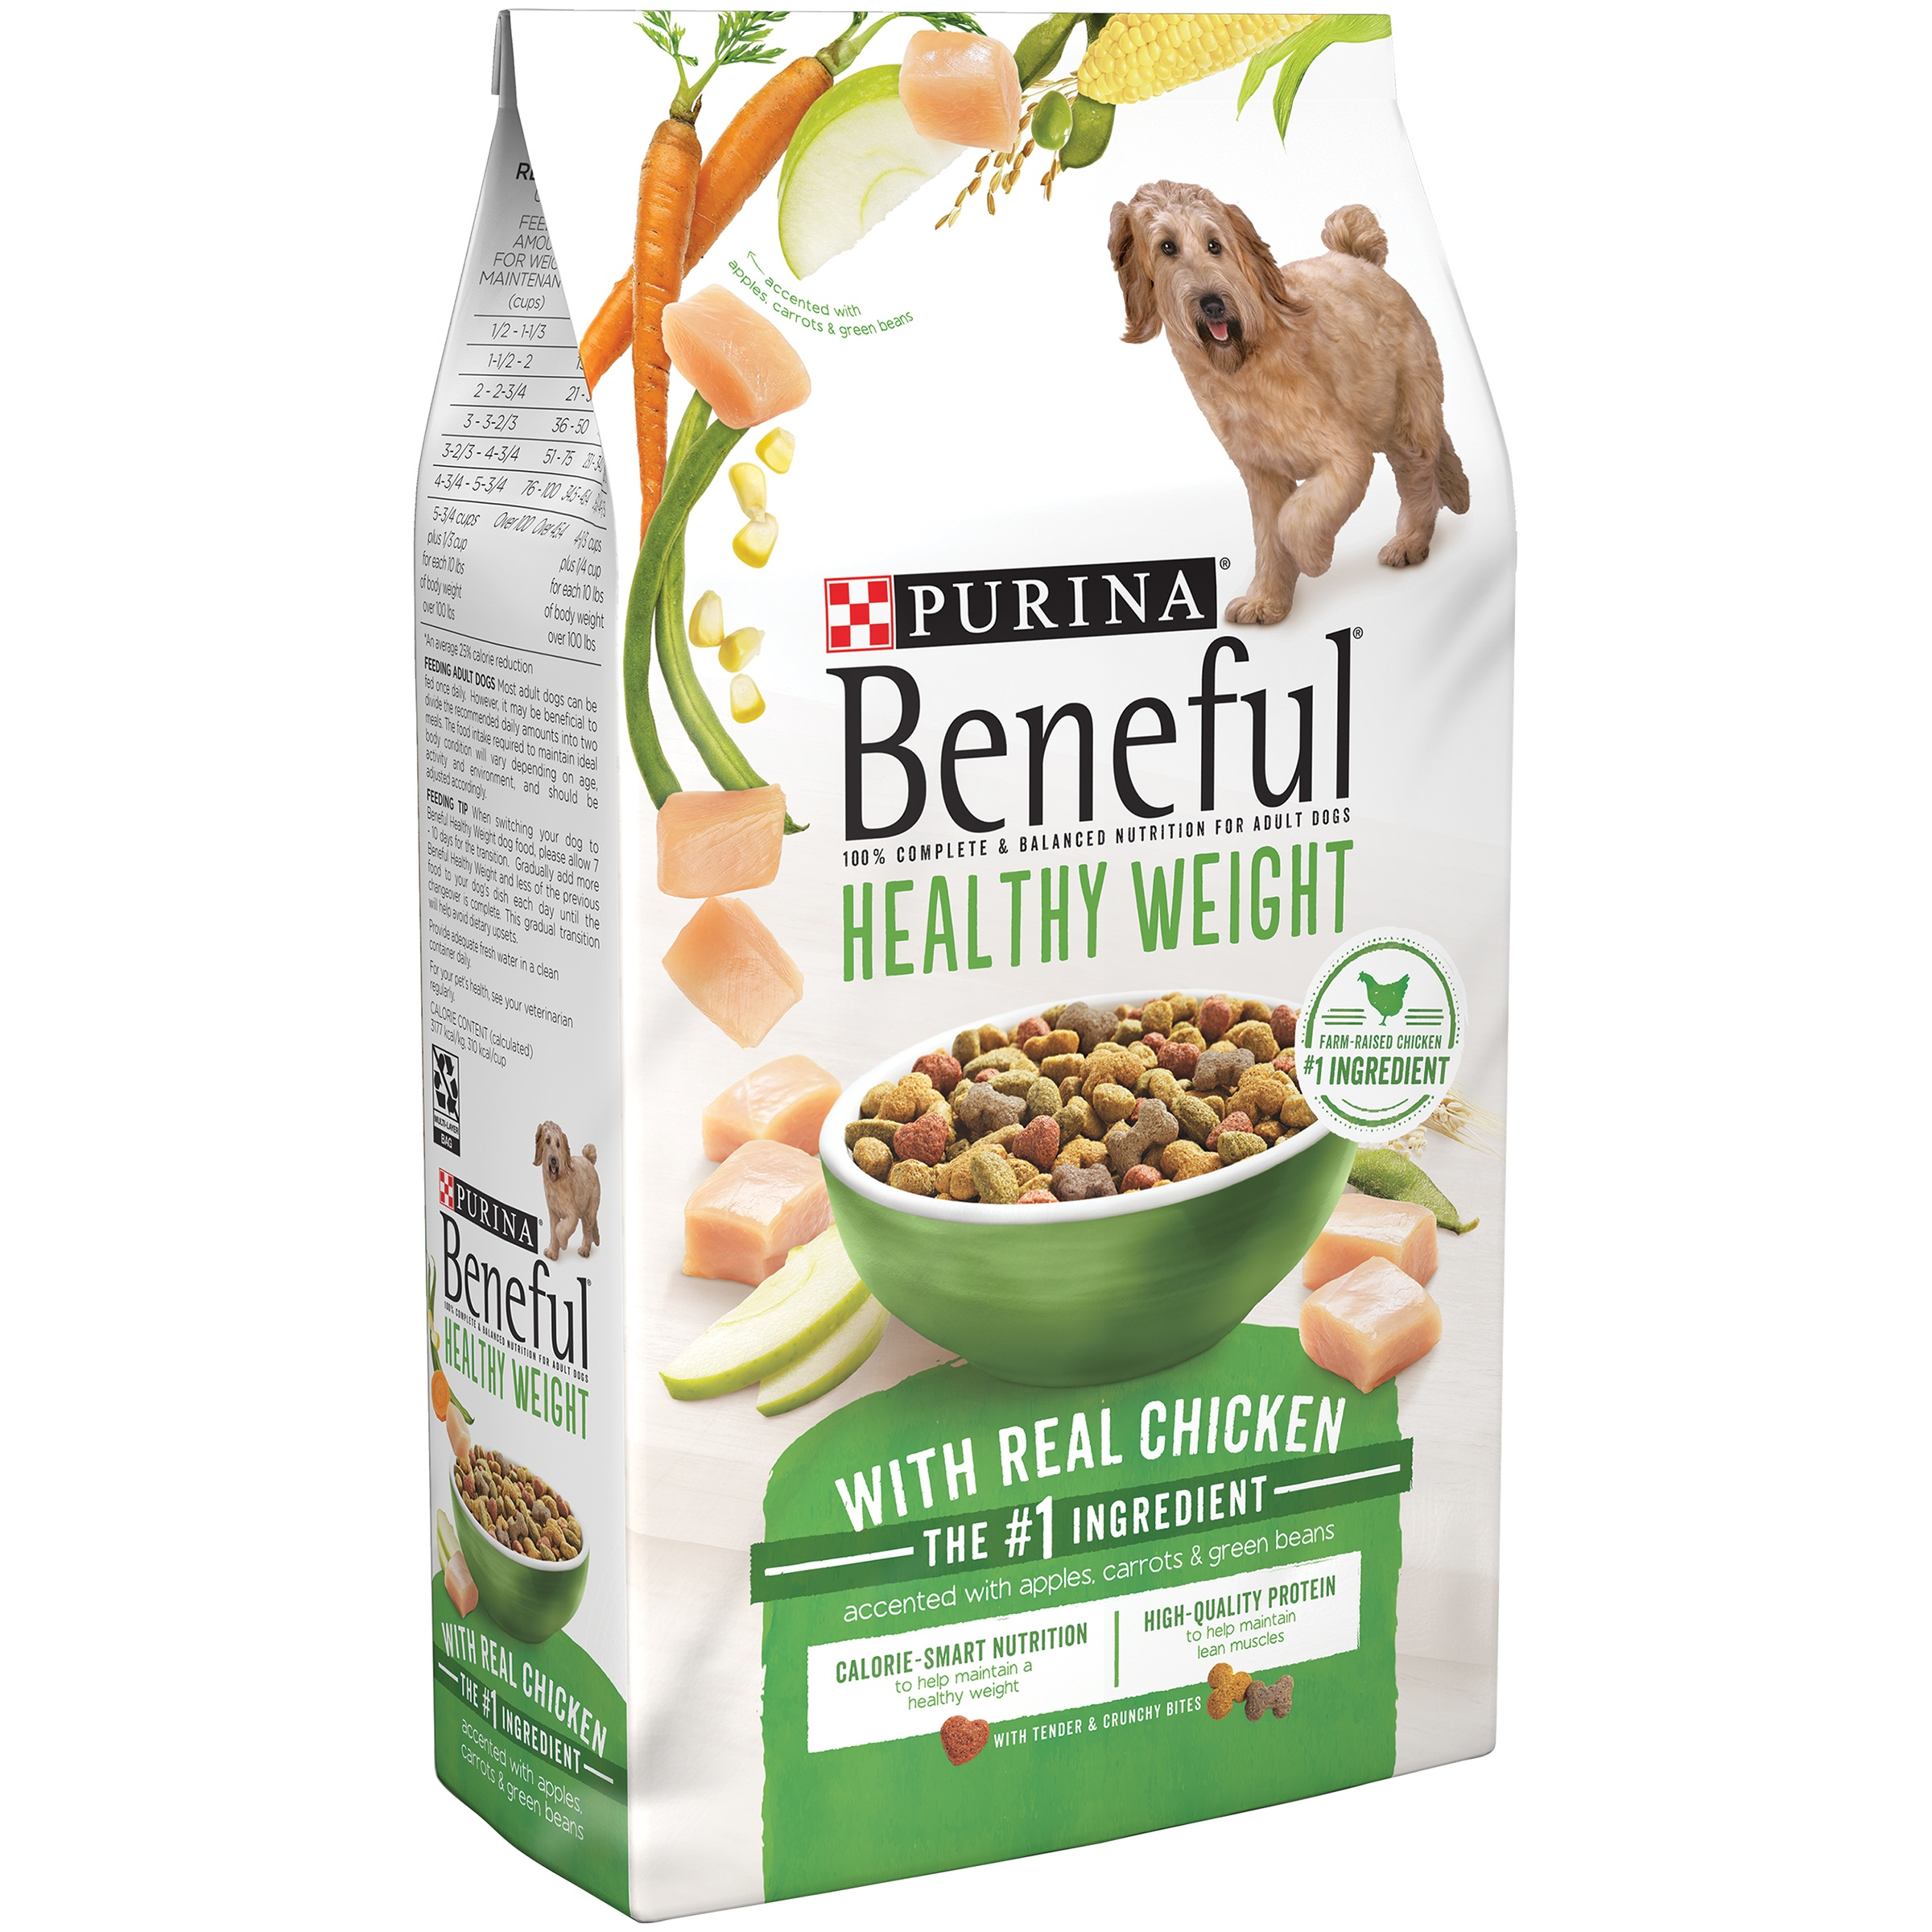 Purina Beneful Healthy Weight With Real Chicken Dry Dog Food 3.5 lb. Bag